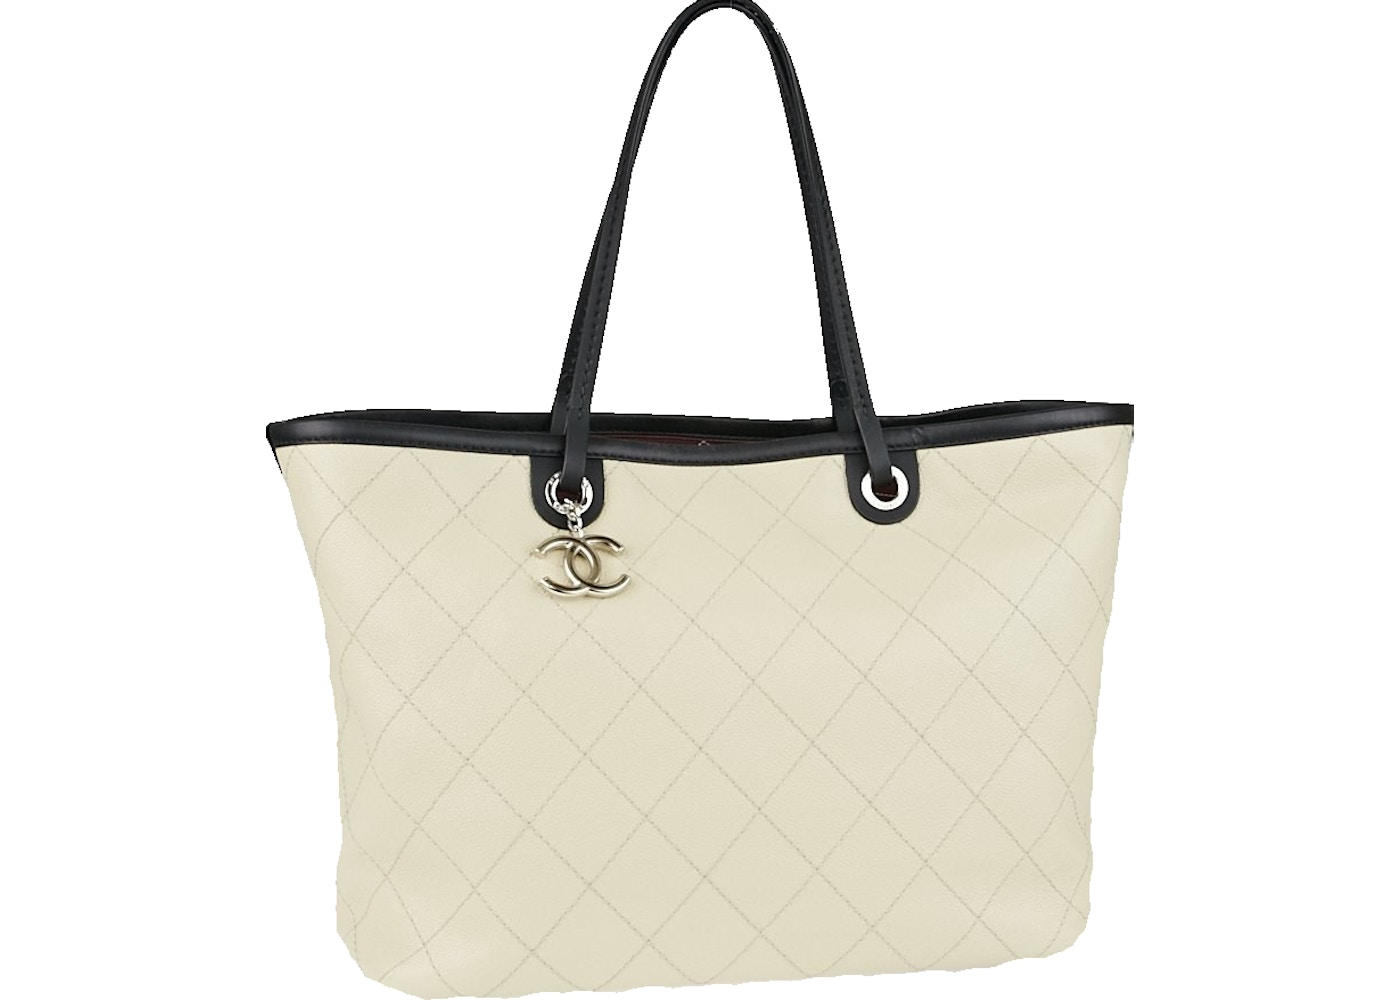 fe25b03921e7 Chanel Tote Shopping Fever Quilted Large Beige Clair/Black